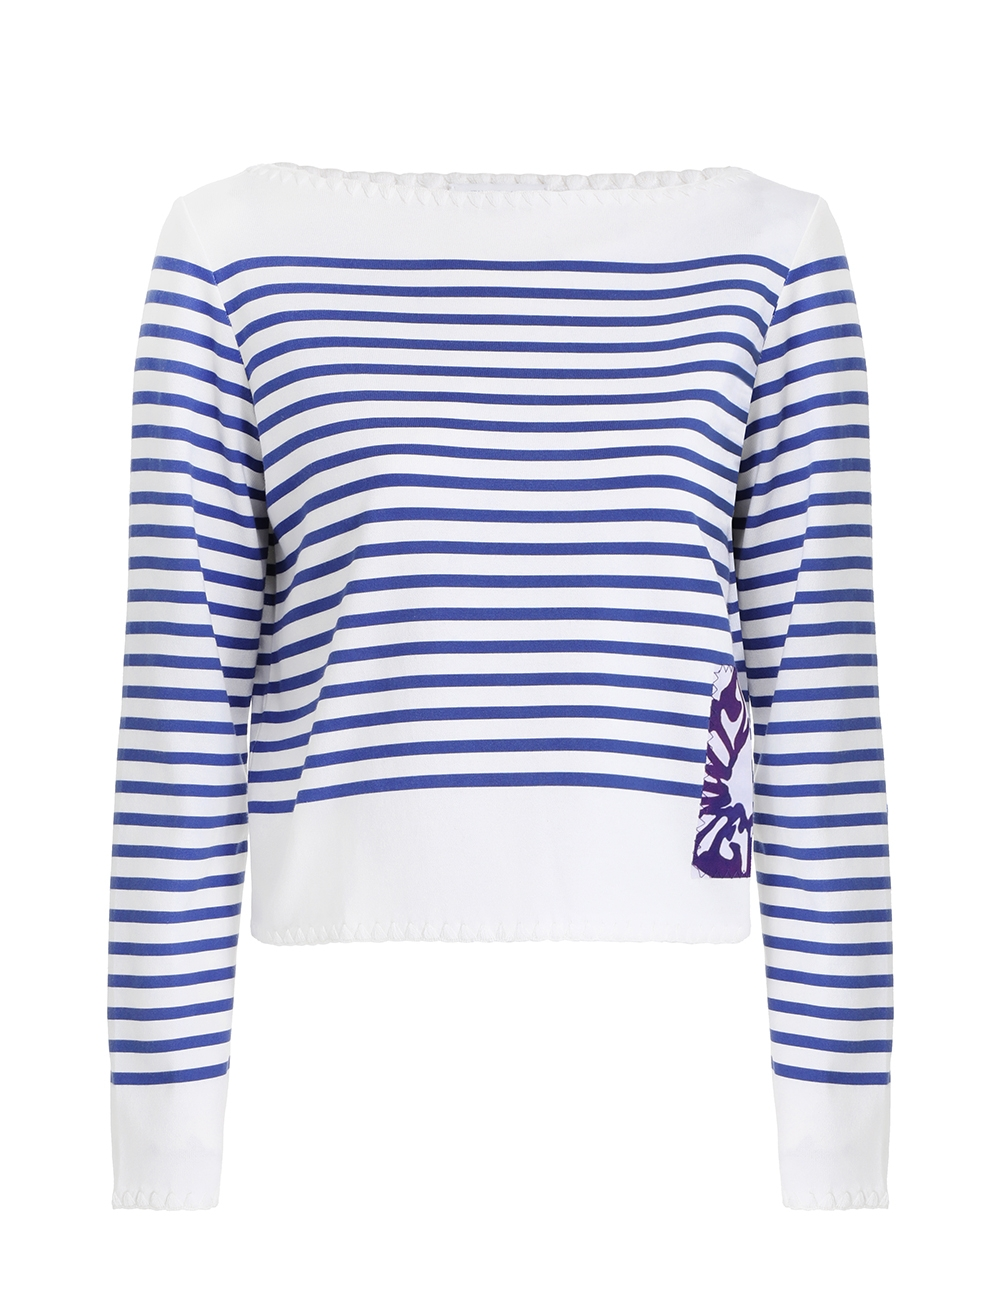 Estelle Stripe Top